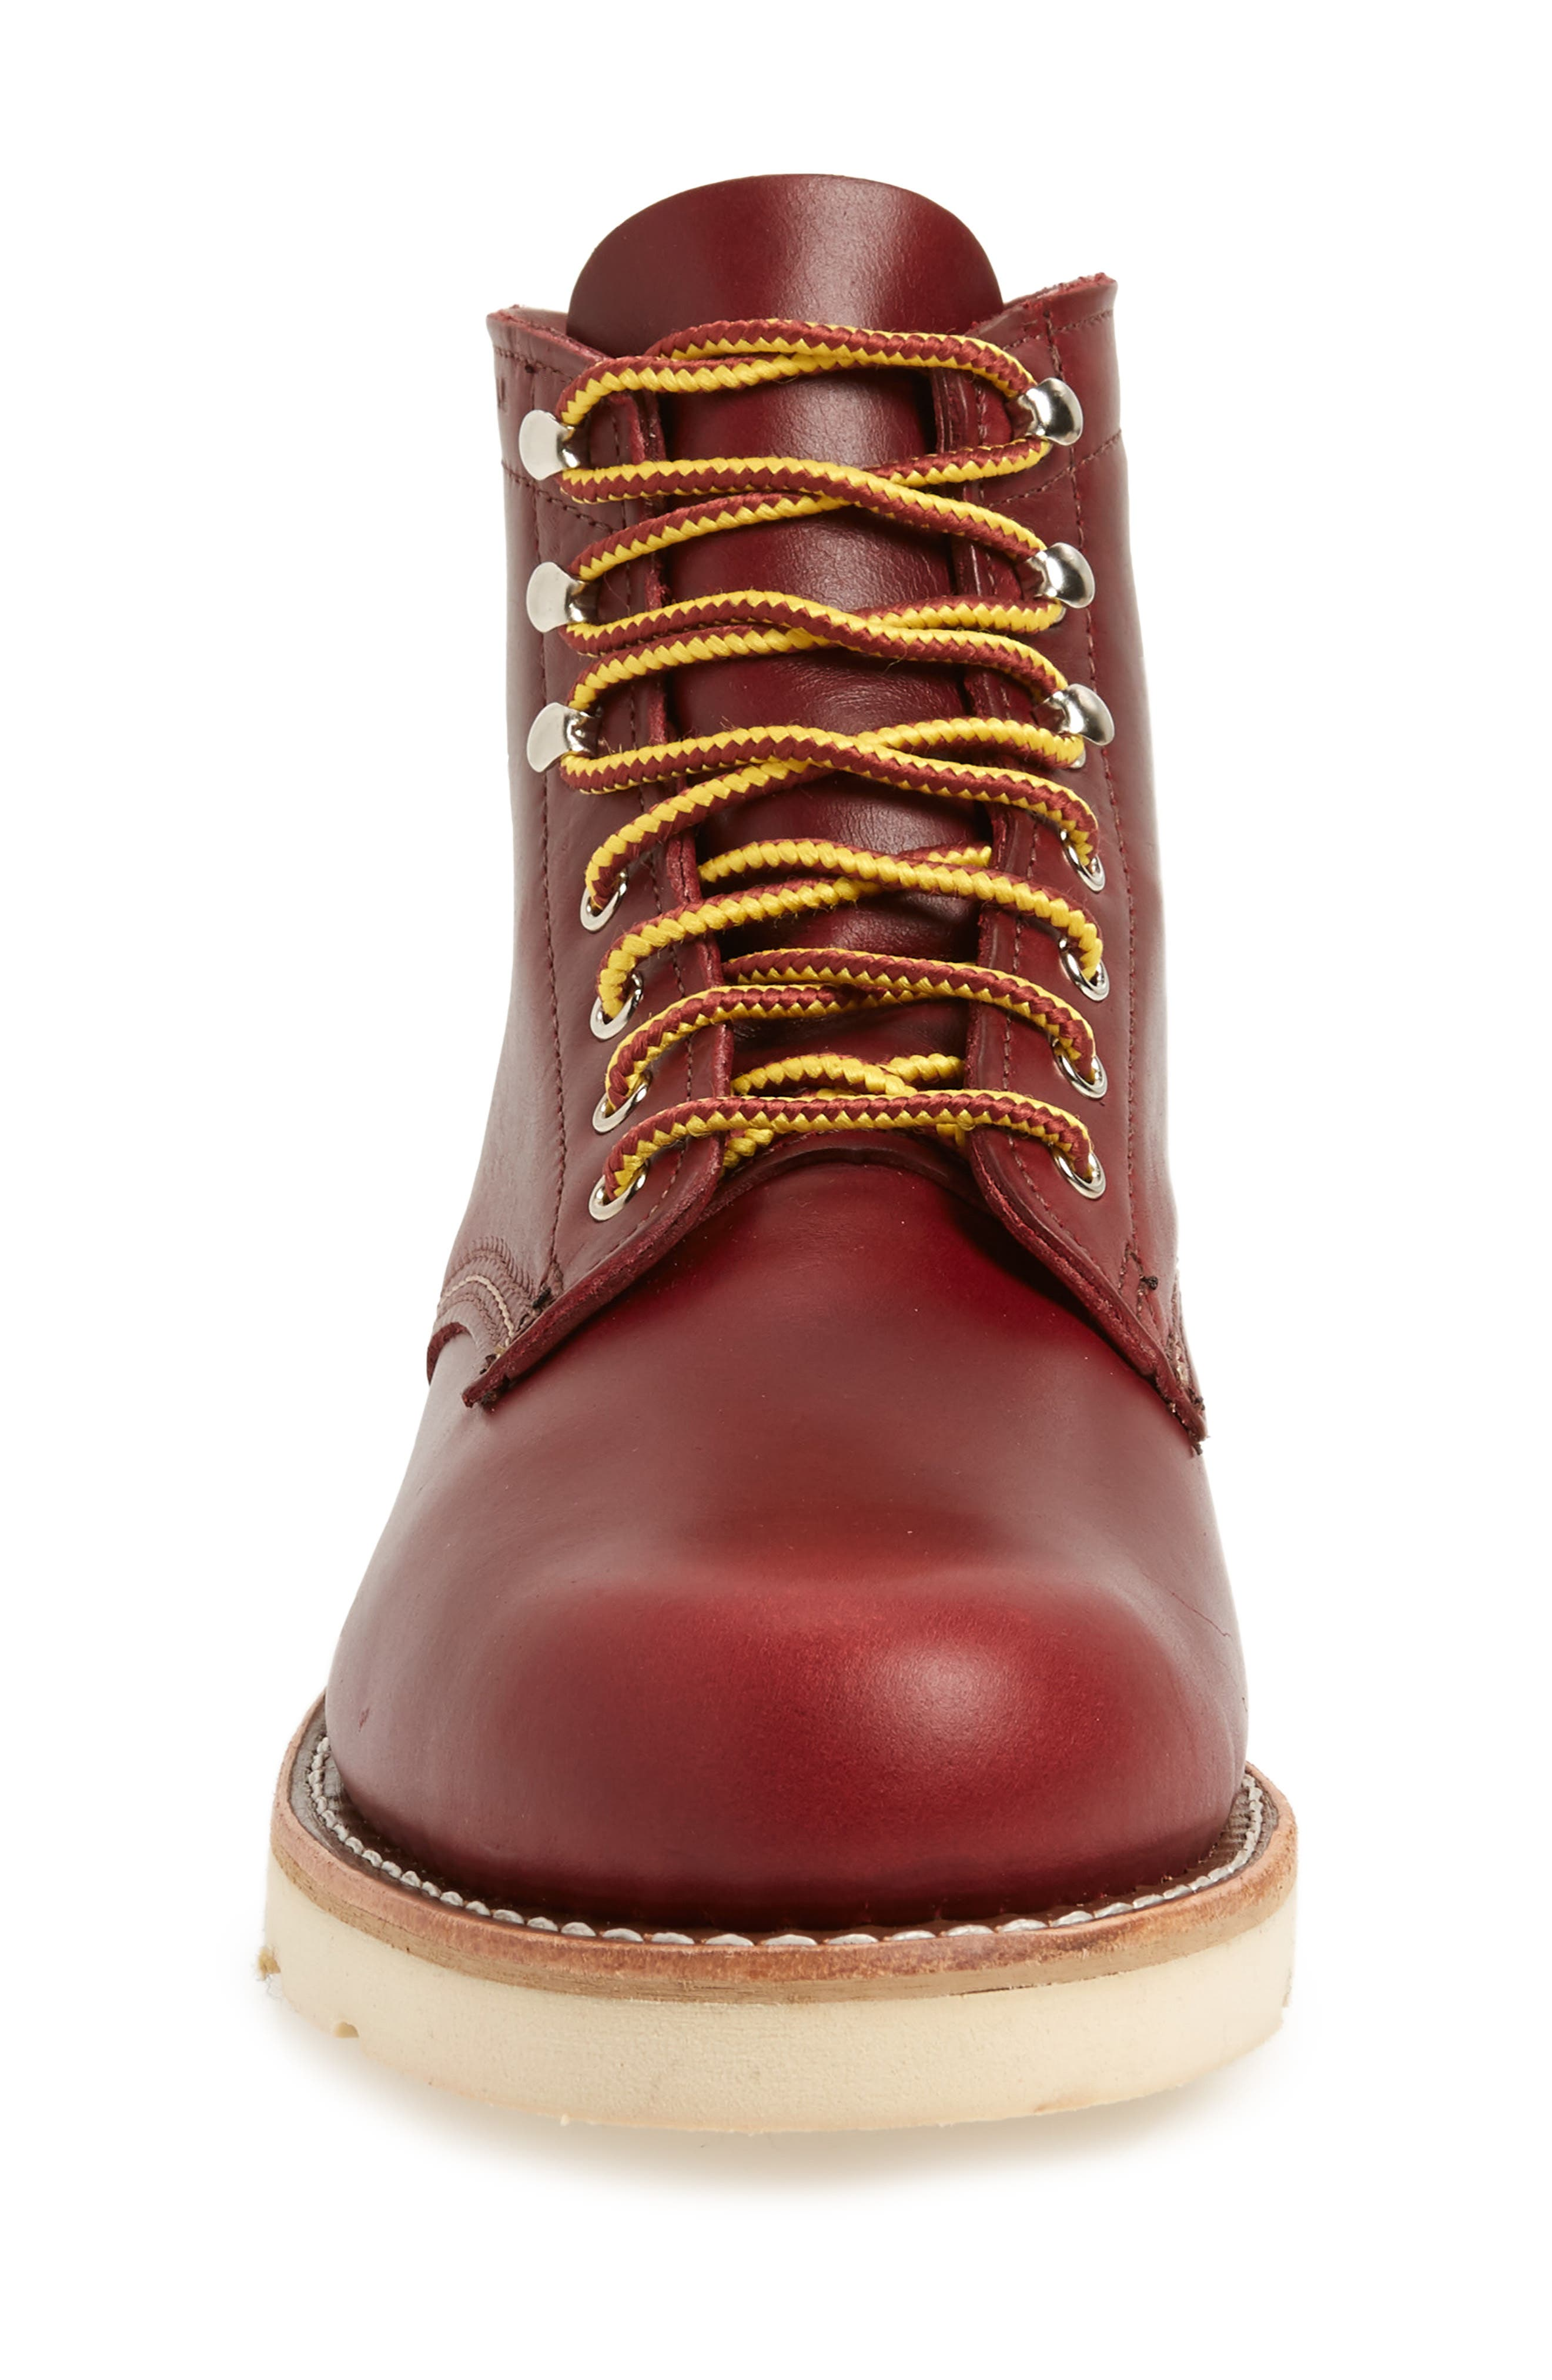 1000 Mile Wedge Boot,                             Alternate thumbnail 4, color,                             RED